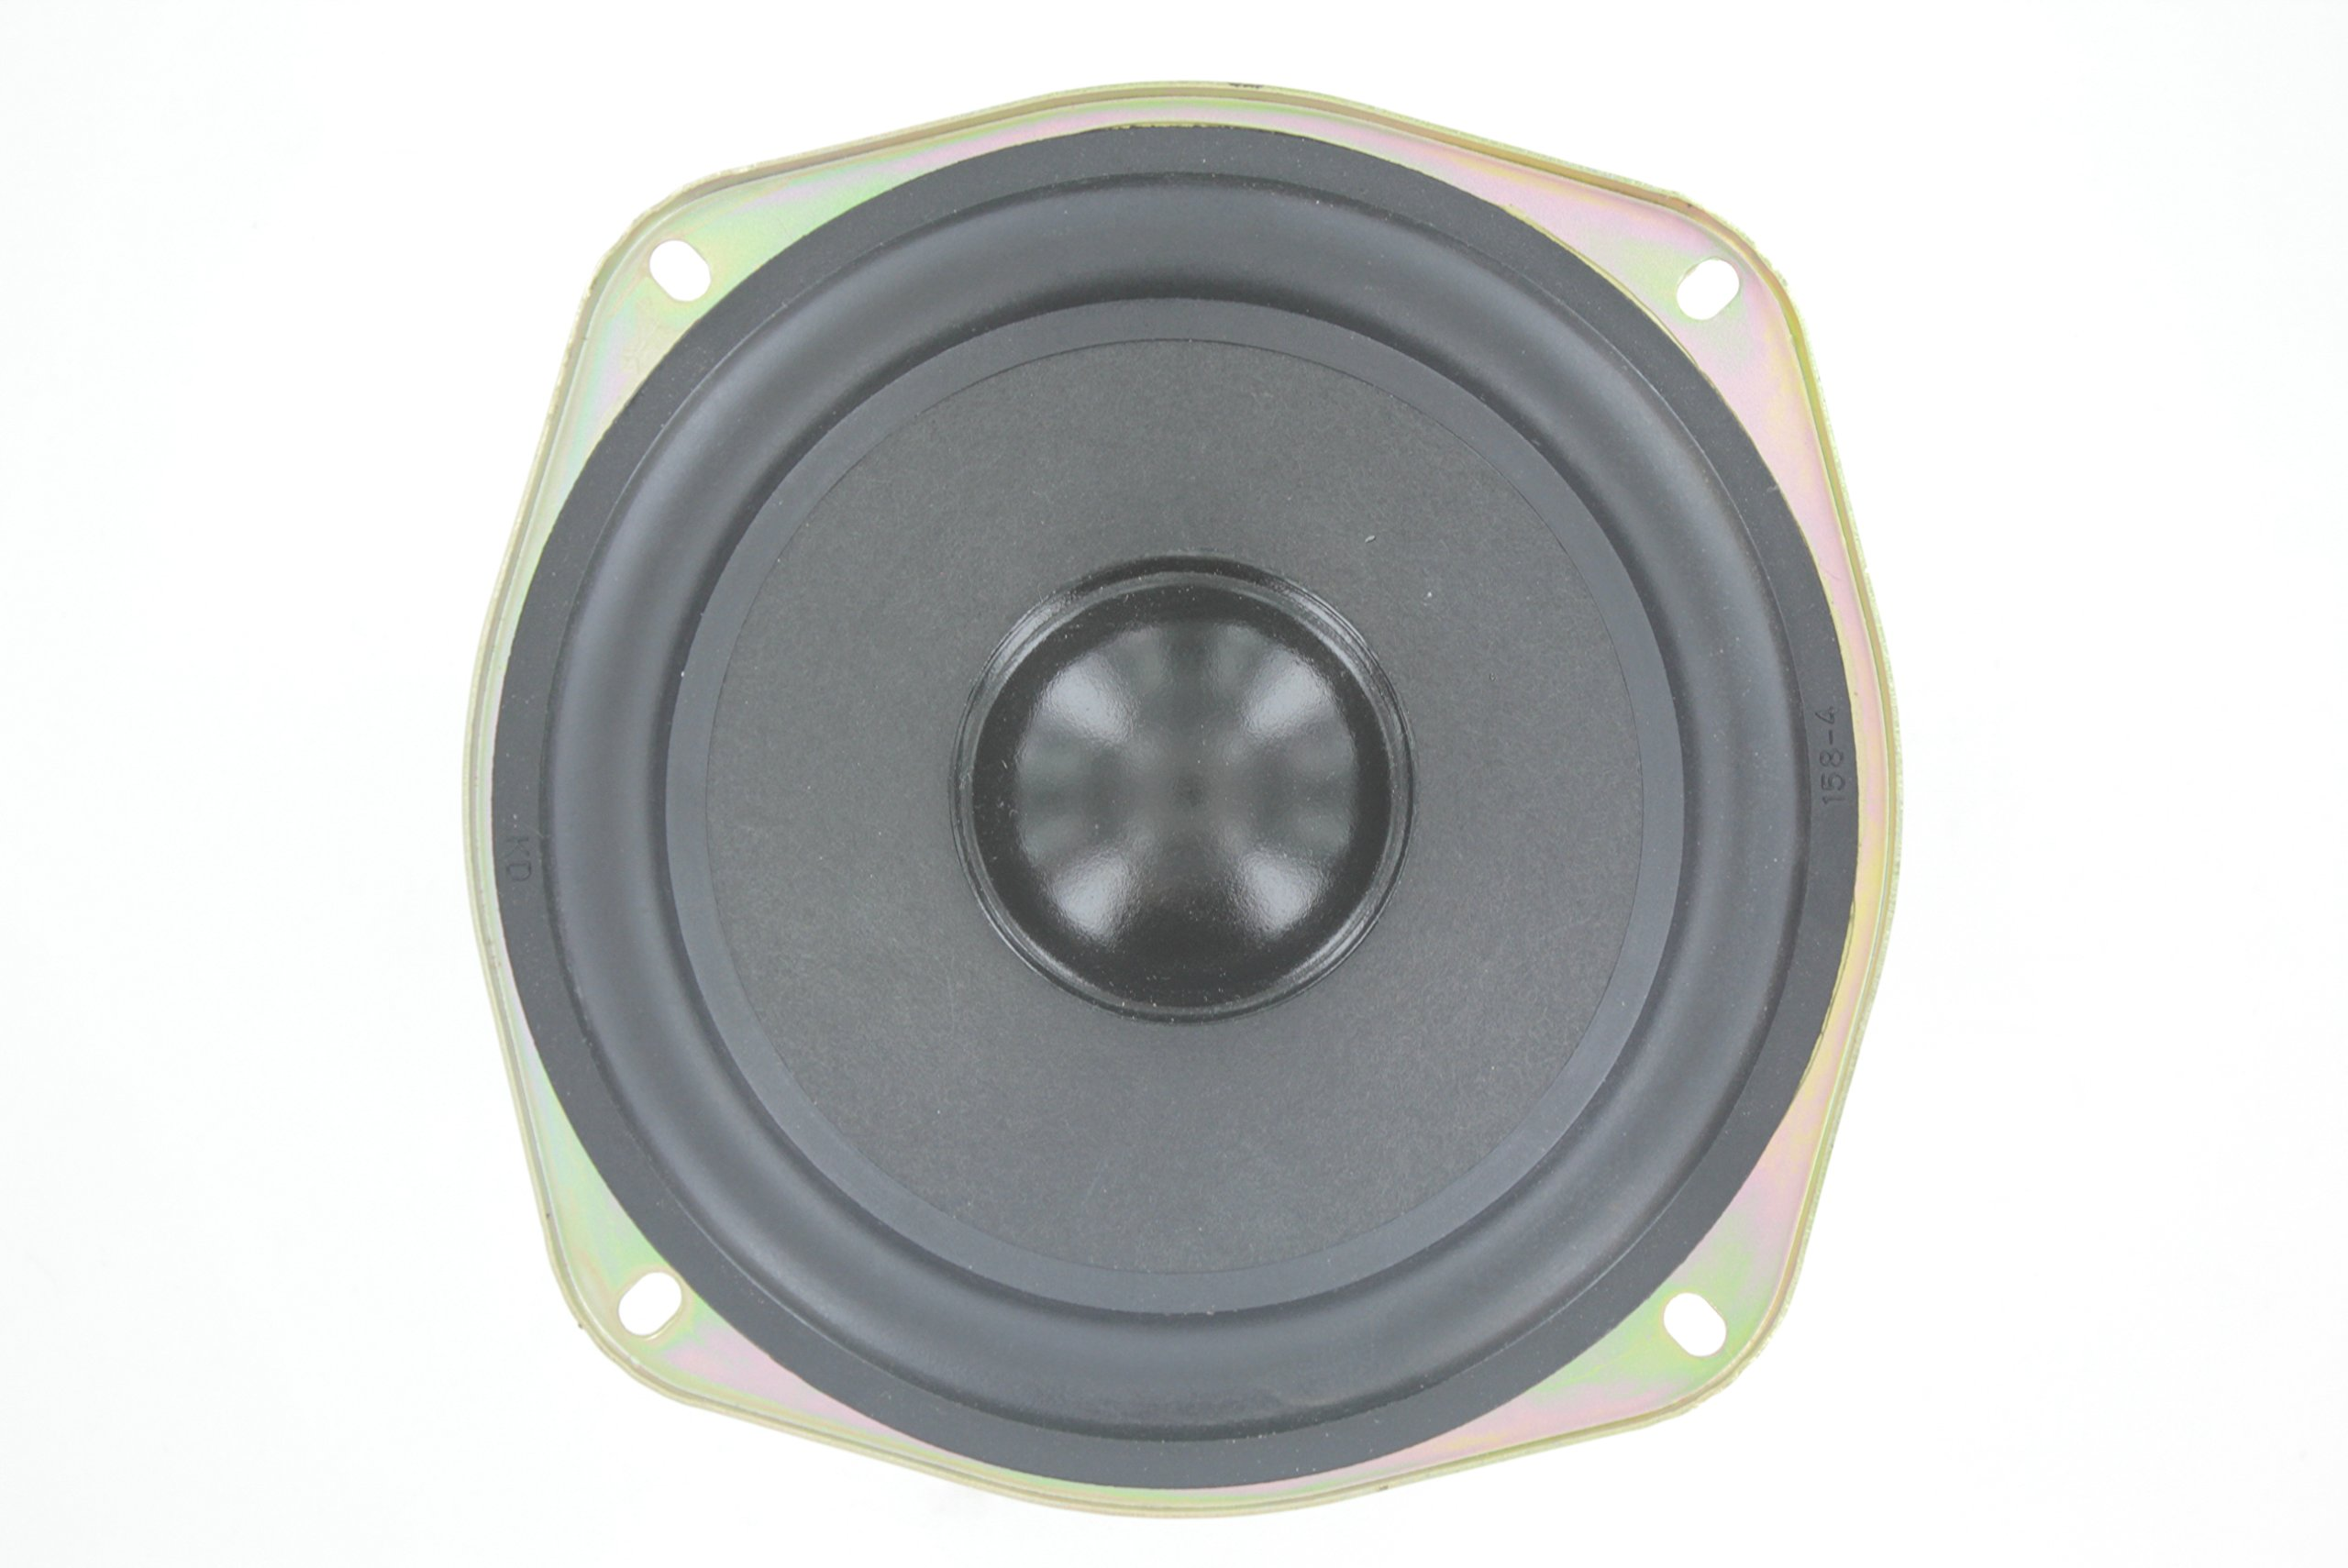 MIYAKO USA Classic Car Speaker 150 Watts 8 ohms Double Magnet Replacement for Round Shape Speakers (1 Pair) (SW-612S)